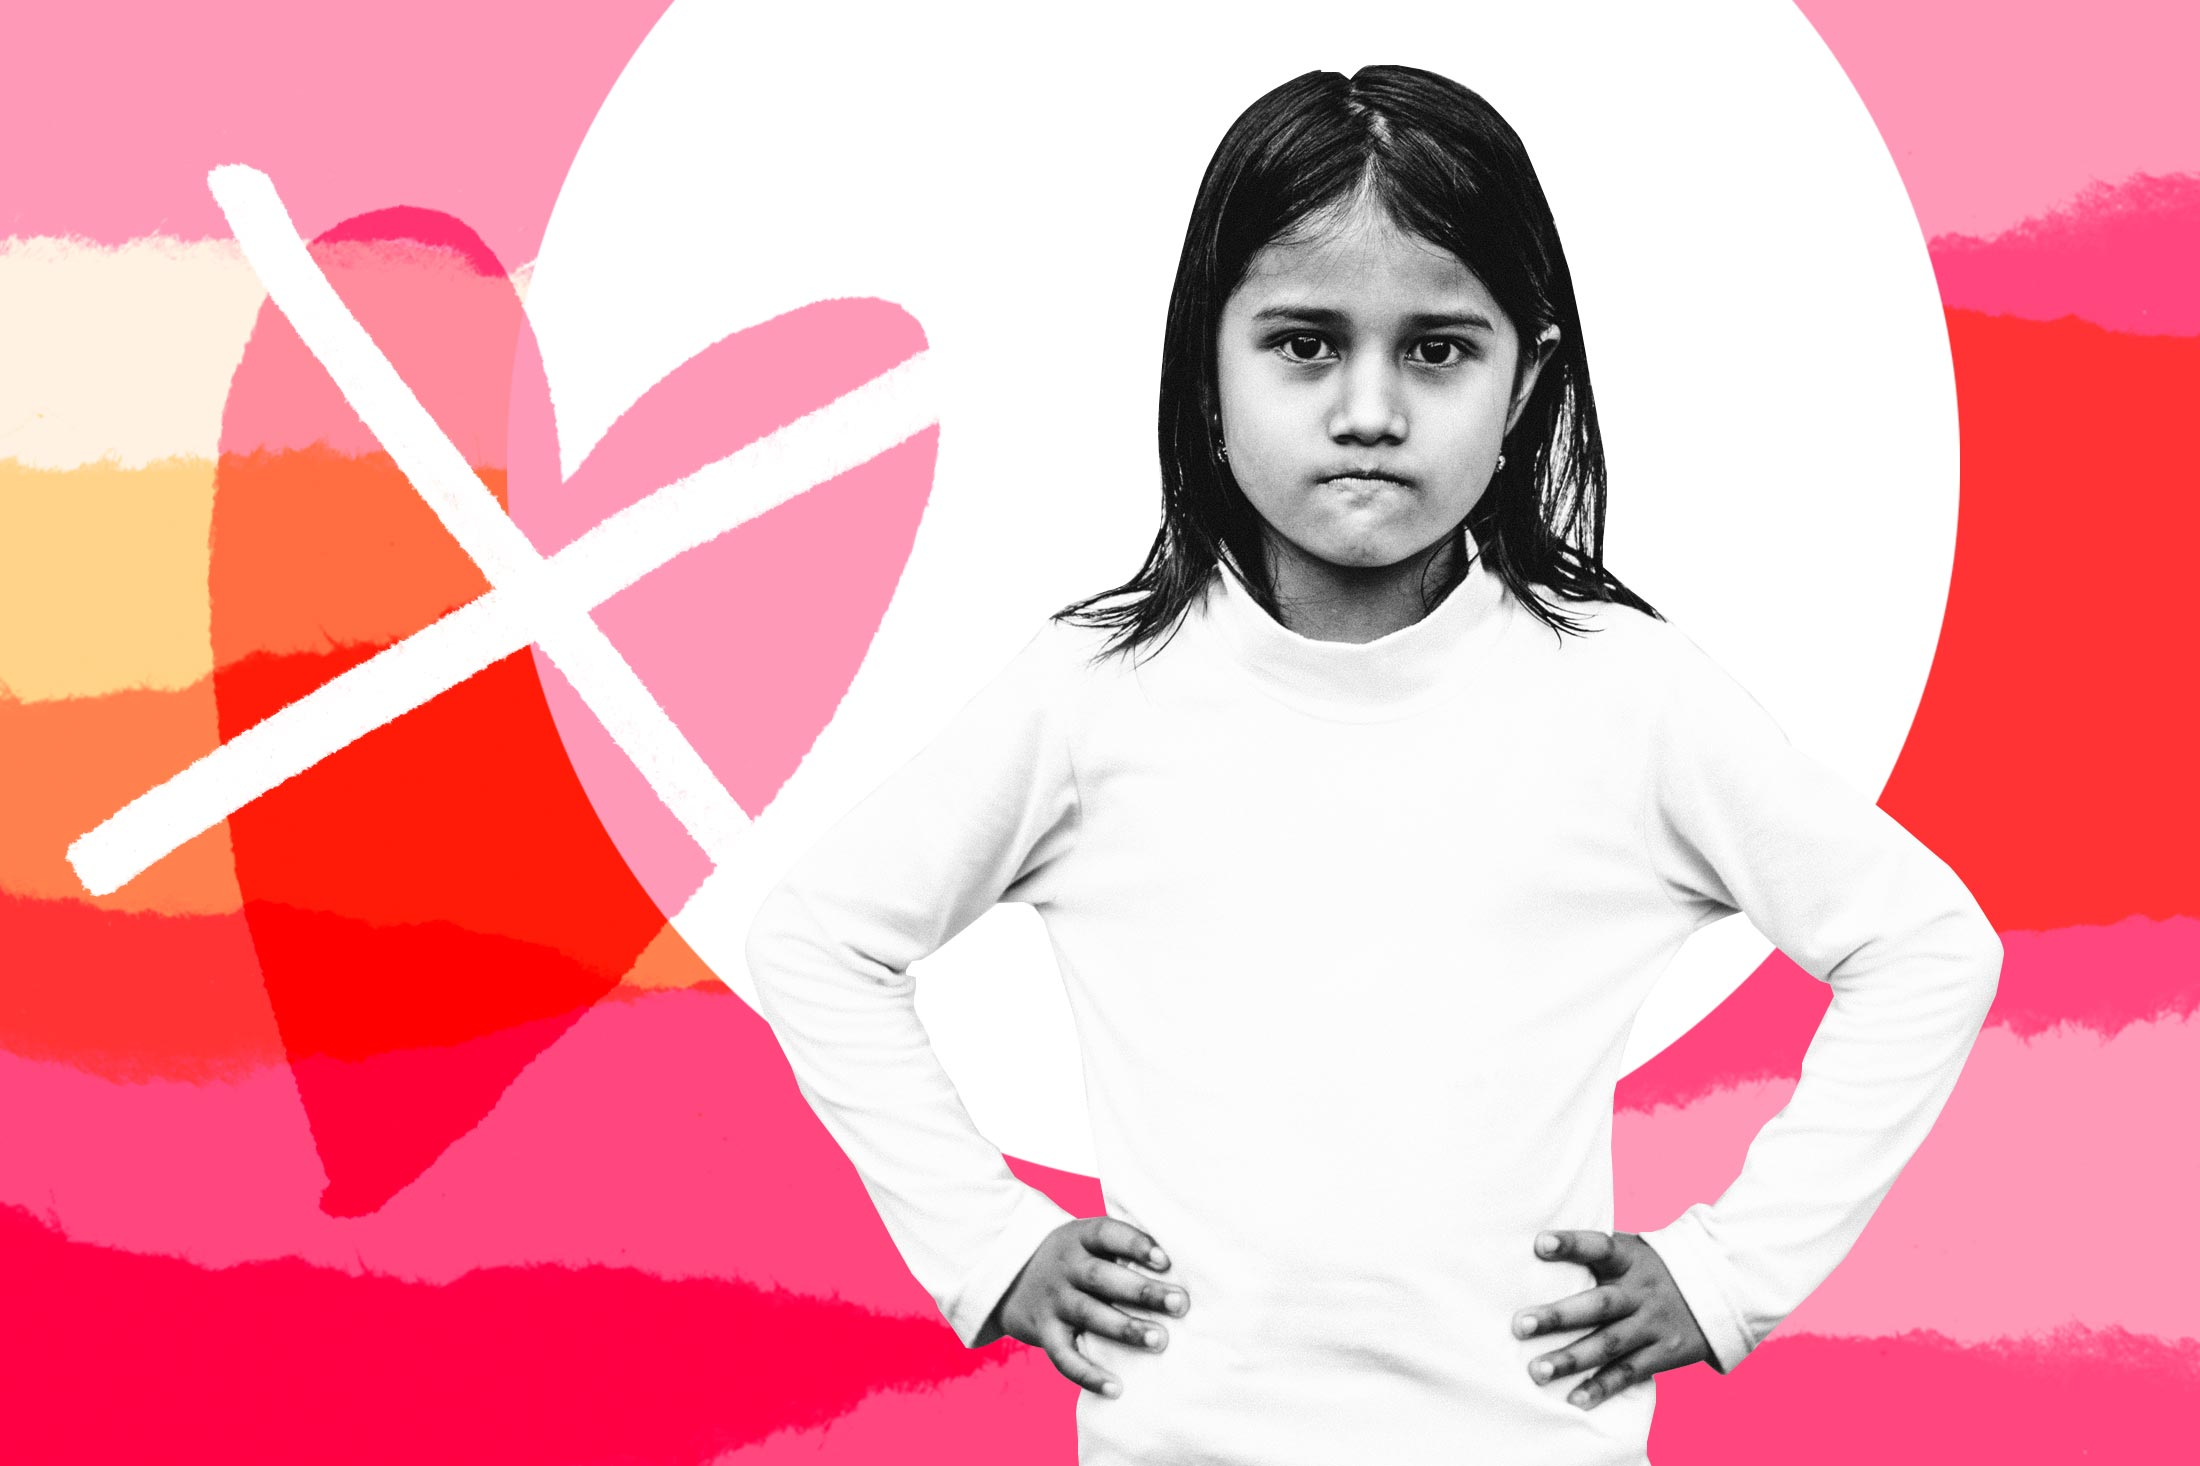 A girl frowning, with her hands on her hips, next to a crossed-out valentine heart.